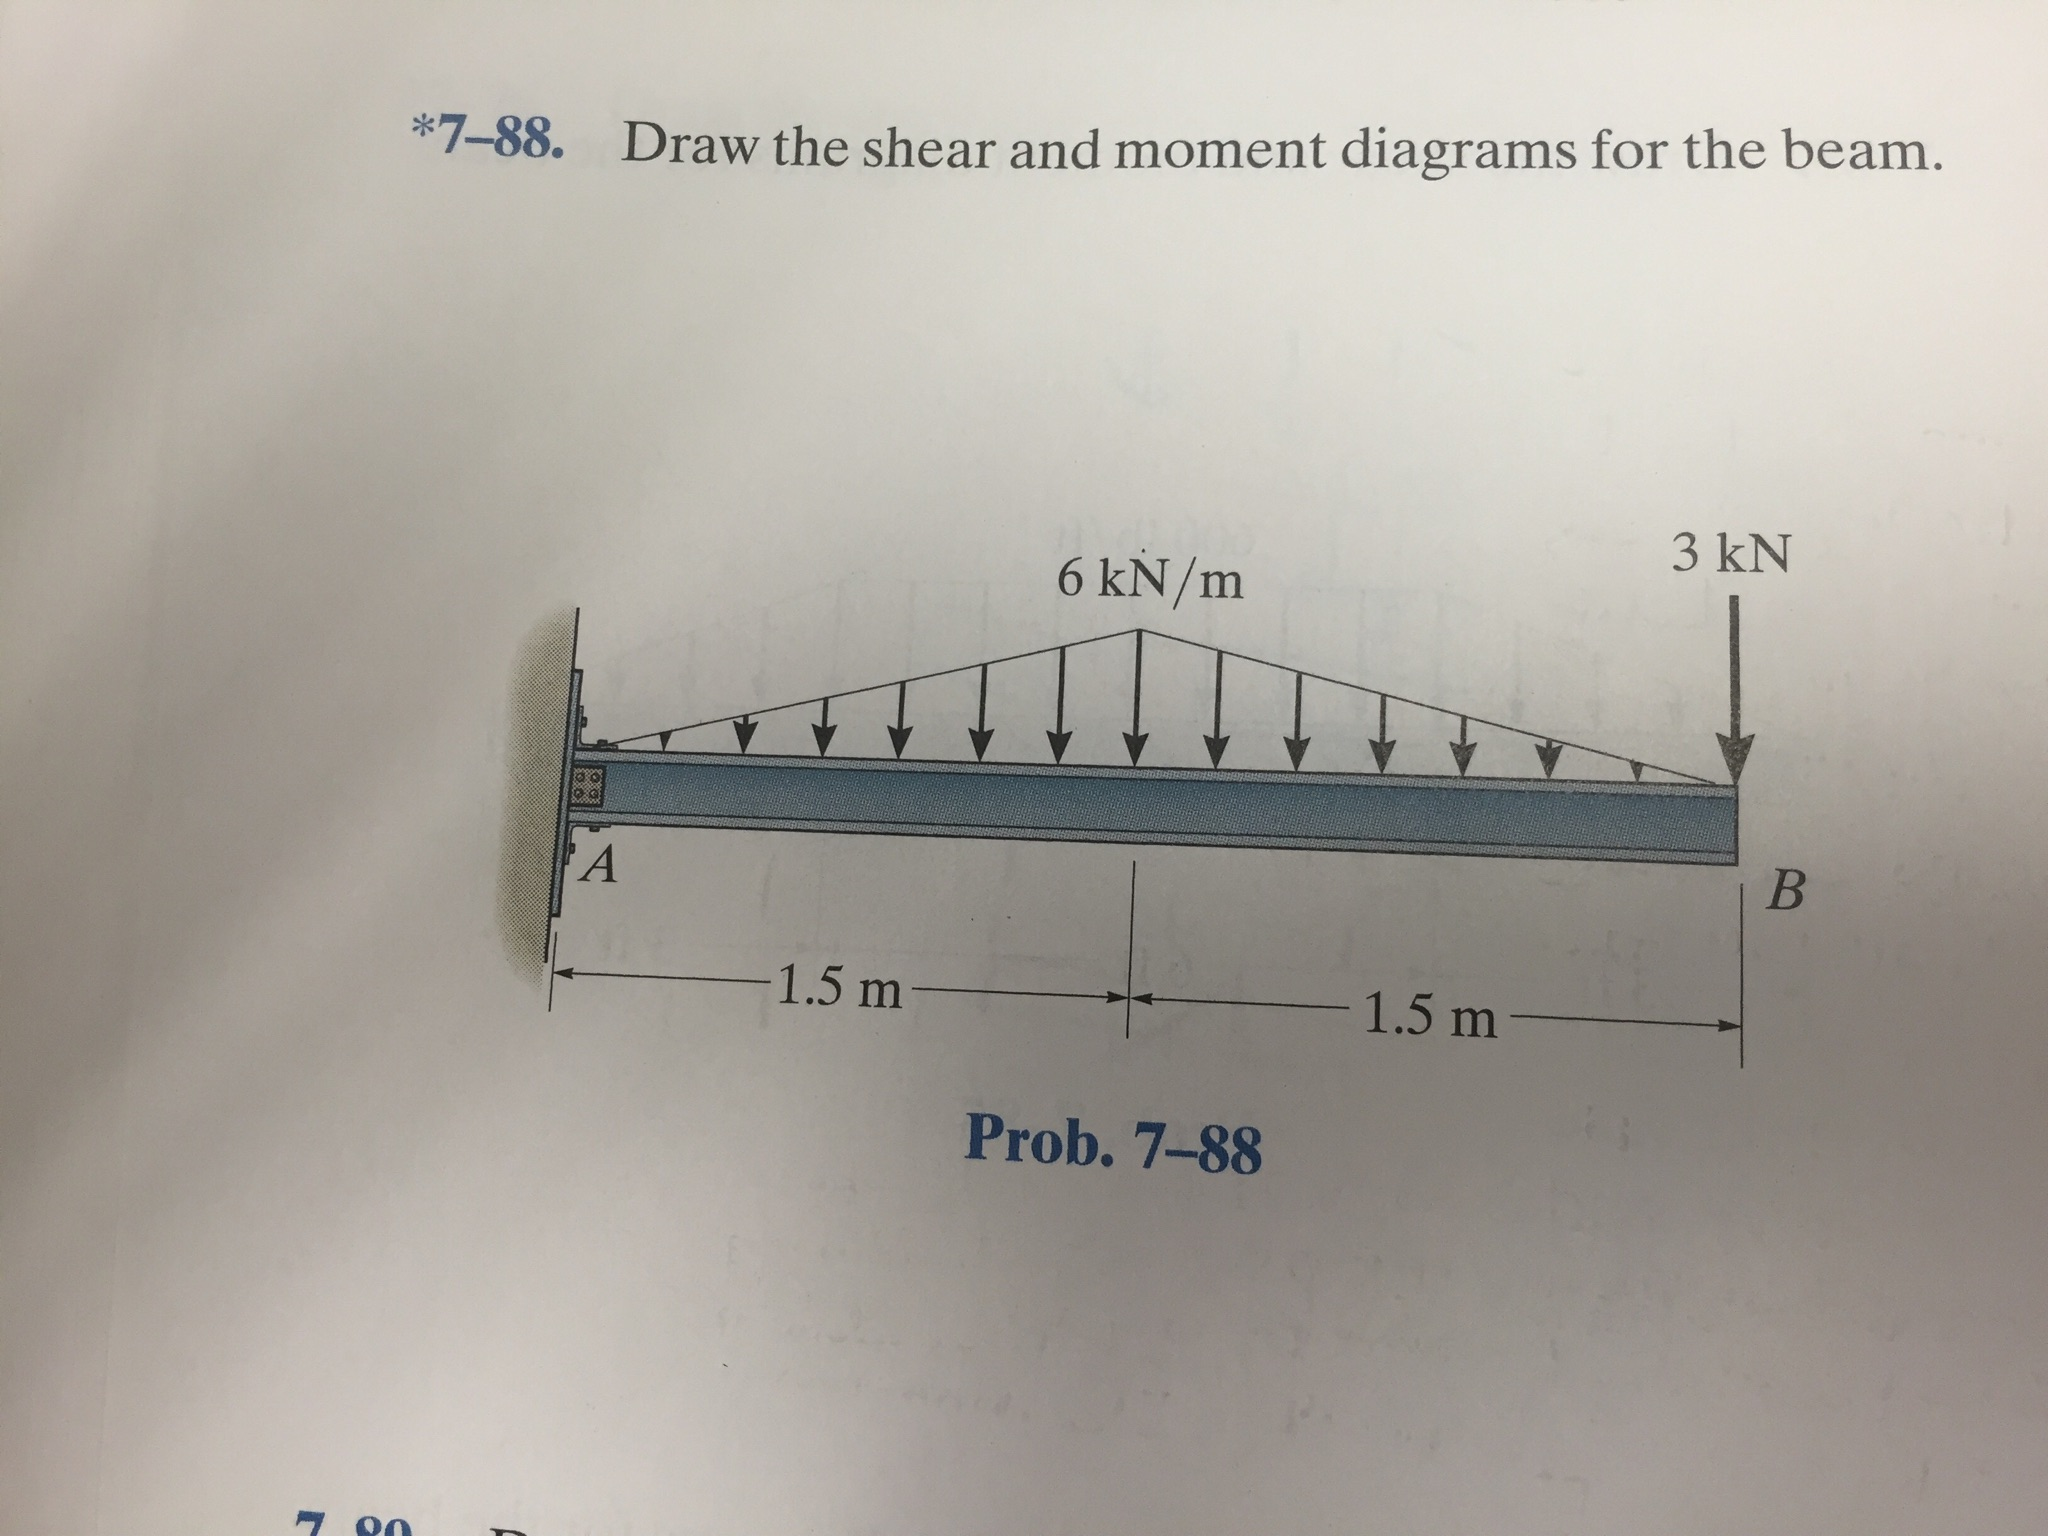 Draw The Shear And Moment Diagrams For The Beam. P... | Chegg.com